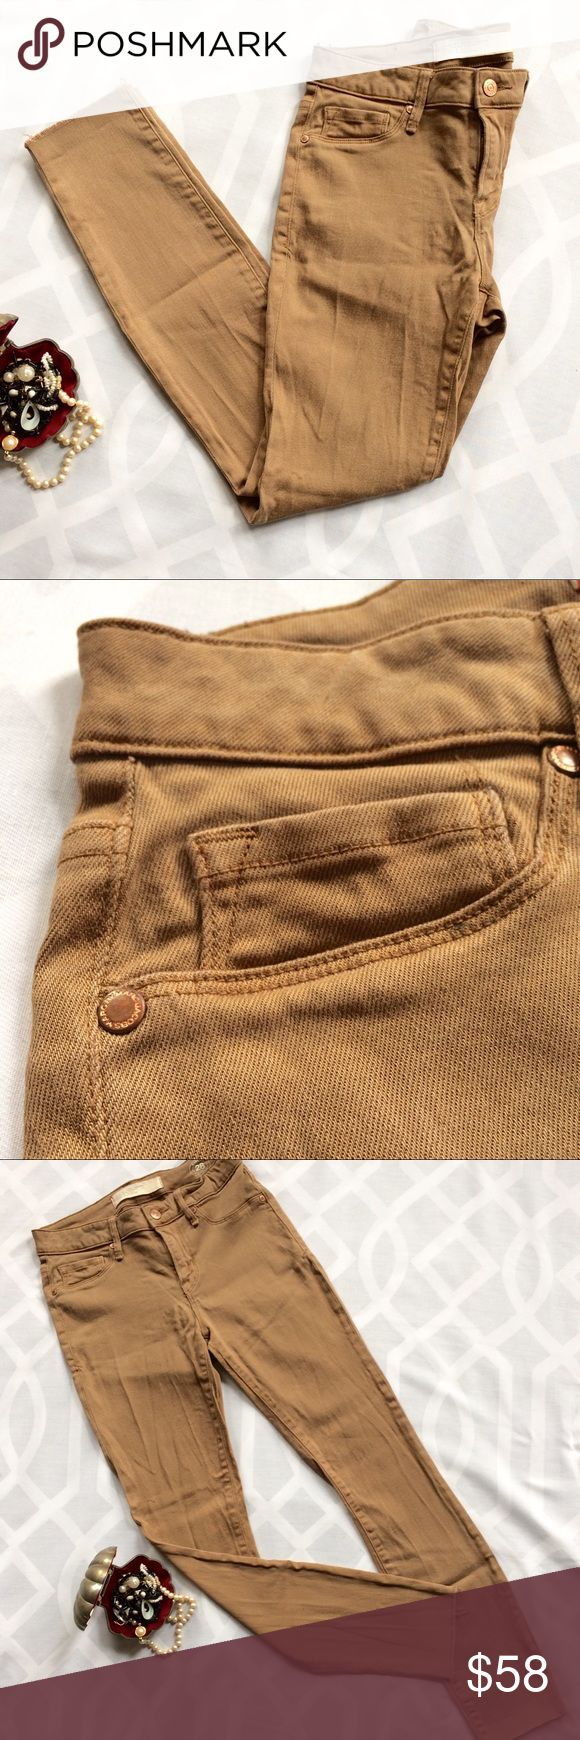 MARC by MARC JACOBS Raw Hem Khaki Skinny Pants MARC by MARC JACOBS Tan/Khaki Stretch Skinny Pants. 2 back pockets. Faux Front Pockets. Raw Hem is very on trend.     Condition: Great/Used, raw hem  Style: Standard Supply; Model # STICK; Type WORKWEAR; M1113909 Color: BOWERY BRASS Size: 28 Waist (flat): 13.75in Rise (front): 8.5in Inseam: 28.5in Leg Opening (flat): 5in Marc by Marc Jacobs Pants Skinny